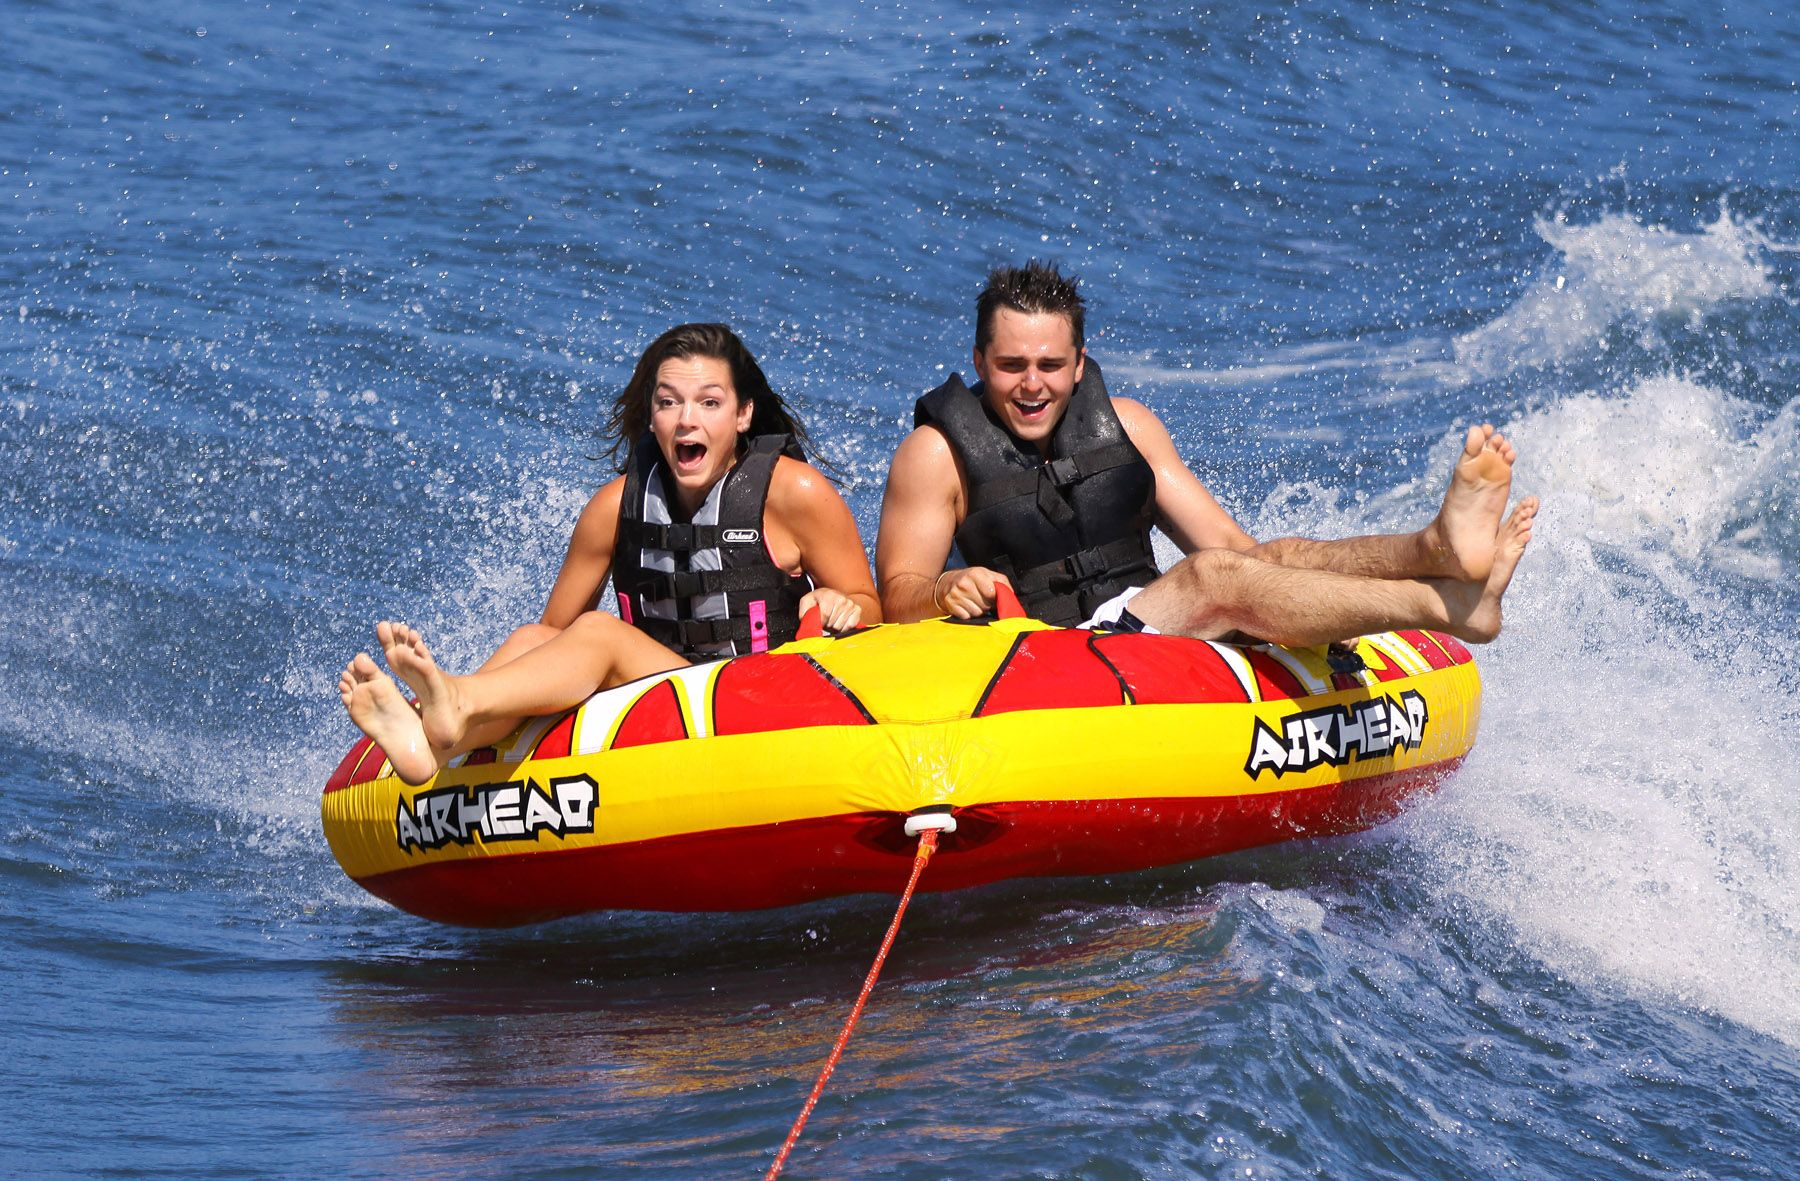 Airhead Blast Rider 2 Donut Inflatable Towable Fun 90 Tow Harness For Towables